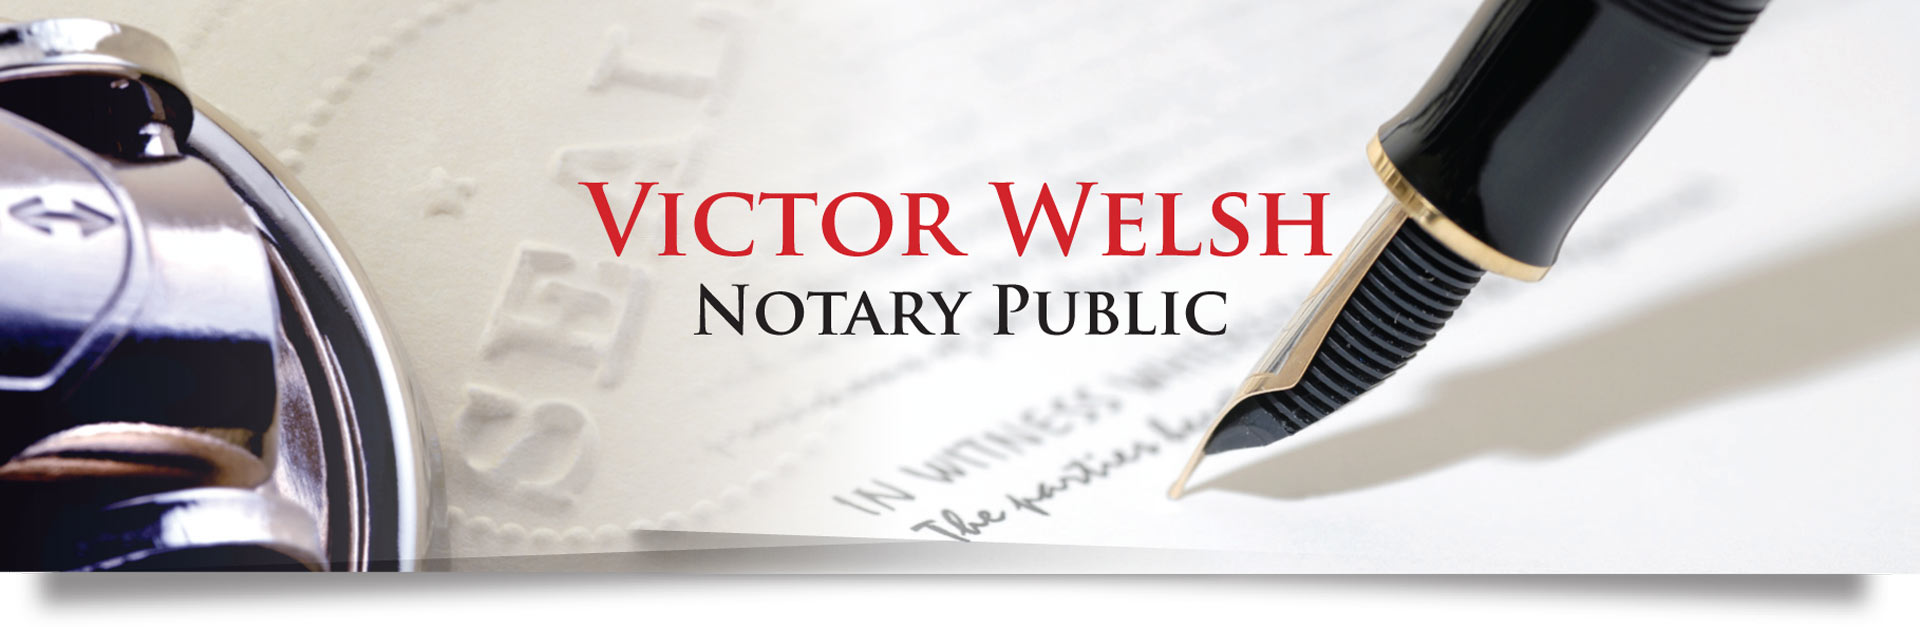 notary public Liverpool